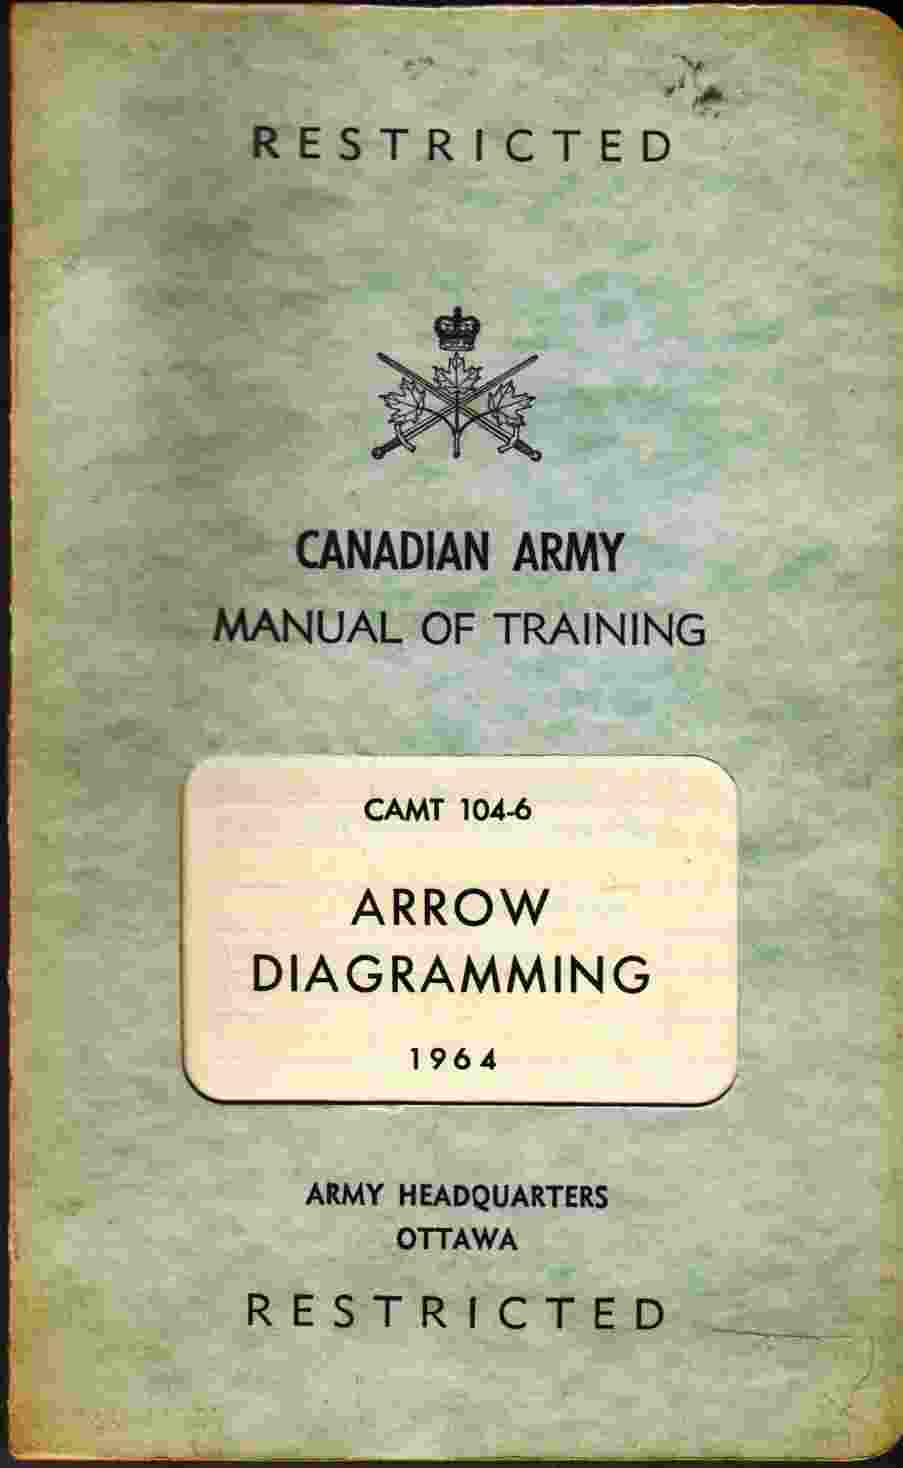 Image for Canadian Army Manual of Training: Arrow Diagramming CAMT 104-6 1964